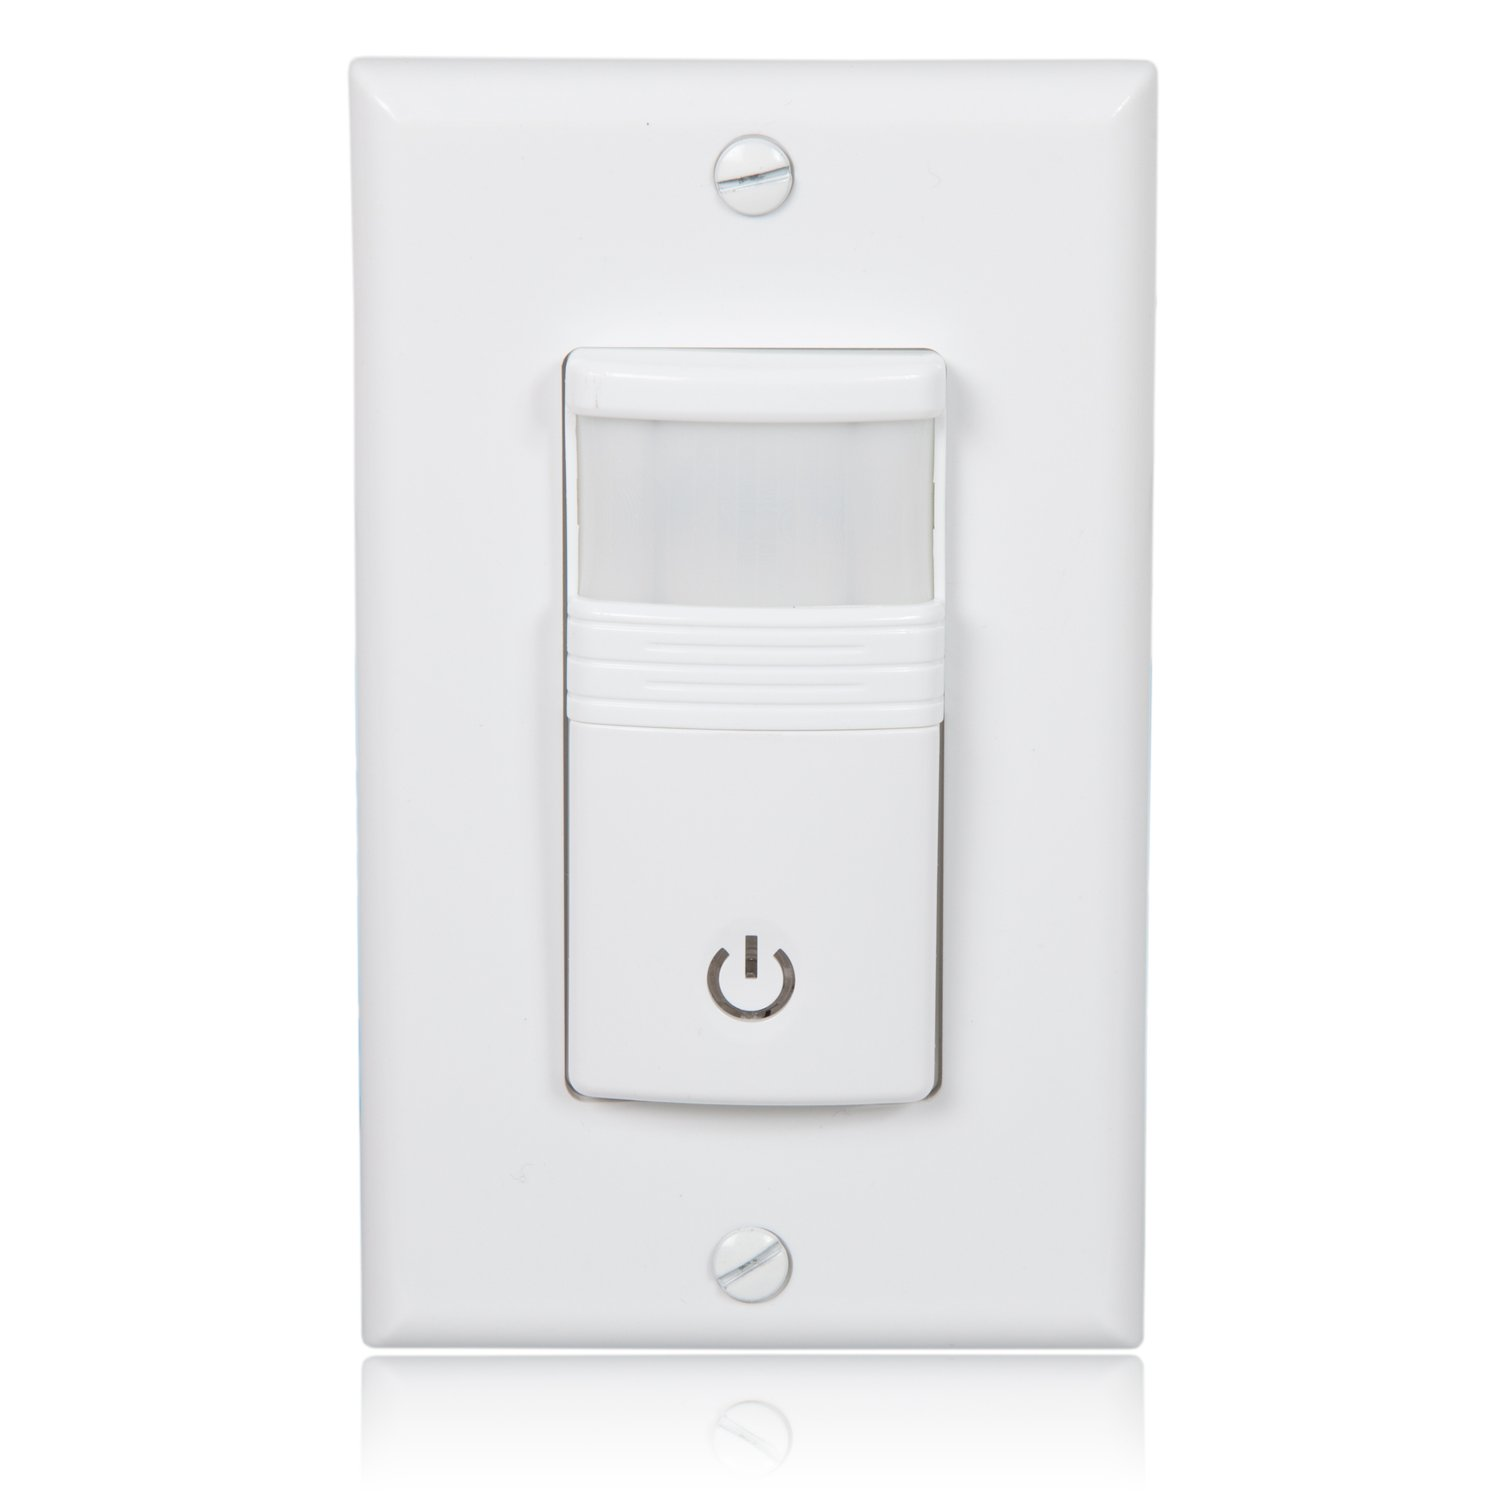 Best Rated In Motion Activated Wall Switches Helpful Customer Sensor Light Switch Wiring Diagram Small Pir Maxxima Occupancy Vacancy Plate Included Product Image